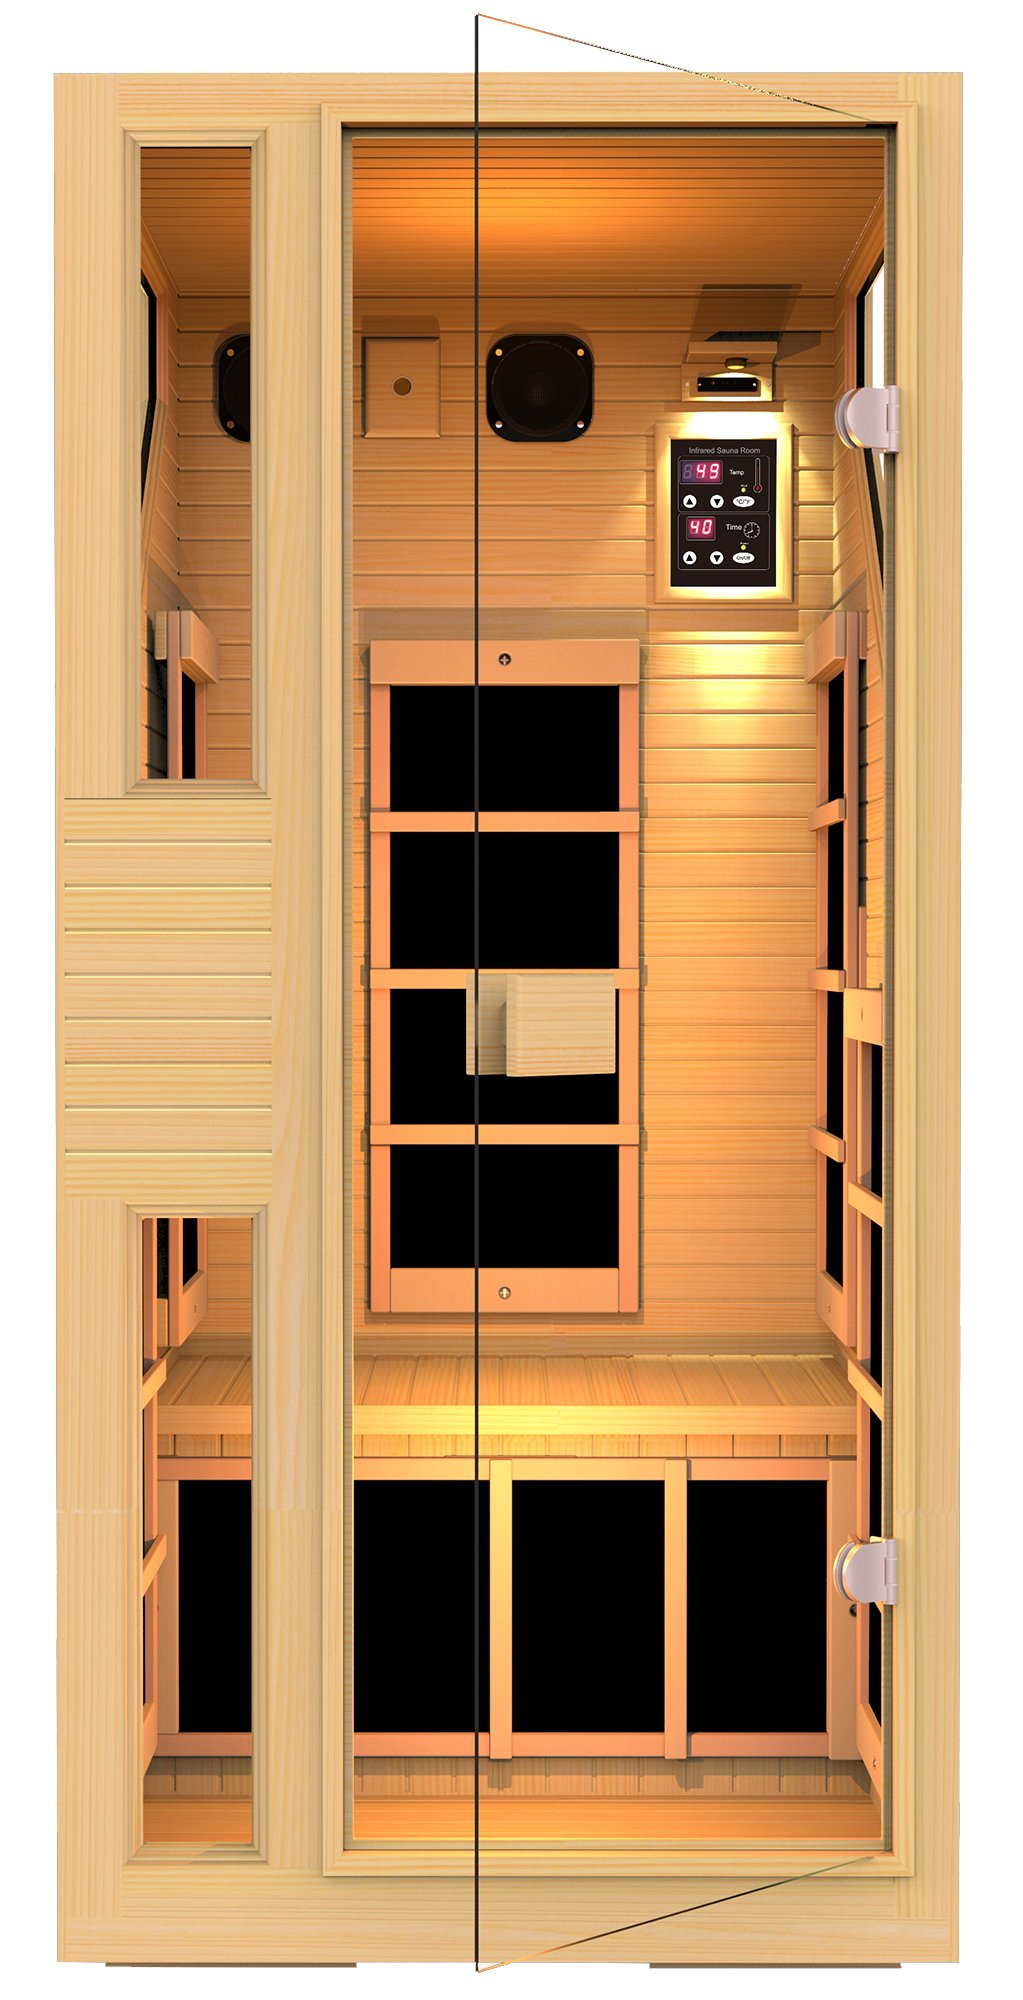 JNH Lifestyles NE1HB1 ENSI Collection 1 Person NO EMF Infrared Sauna Limited by JNH Lifestyles (Image #1)